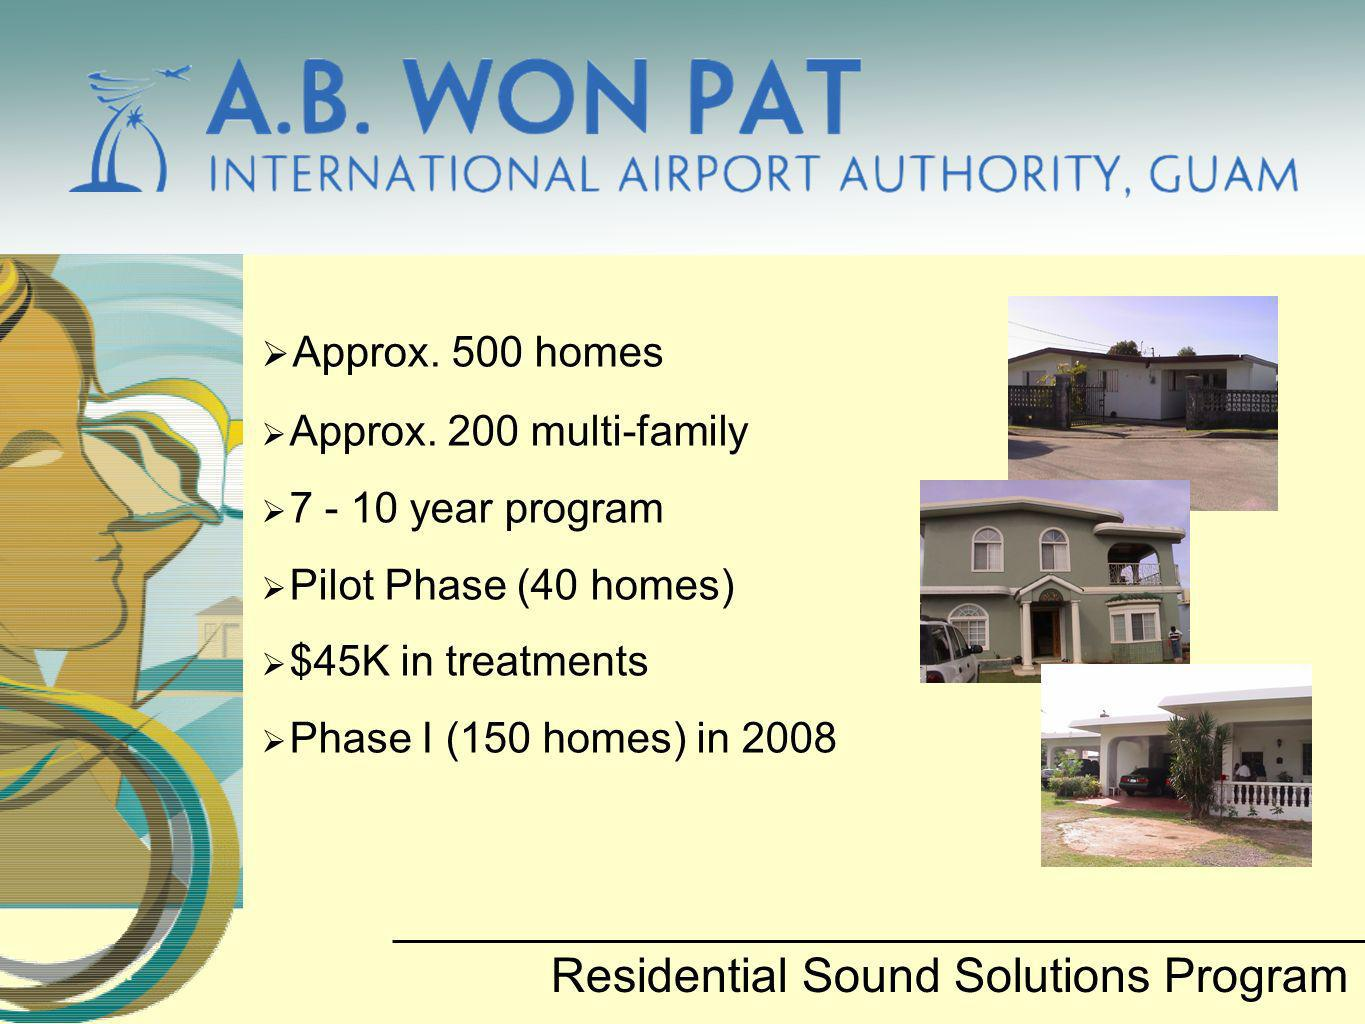 Approx. 500 homes Approx. 200 multi-family 7 - 10 year program Pilot Phase (40 homes) $45K in treatments Phase I (150 homes) in 2008 Residential Sound